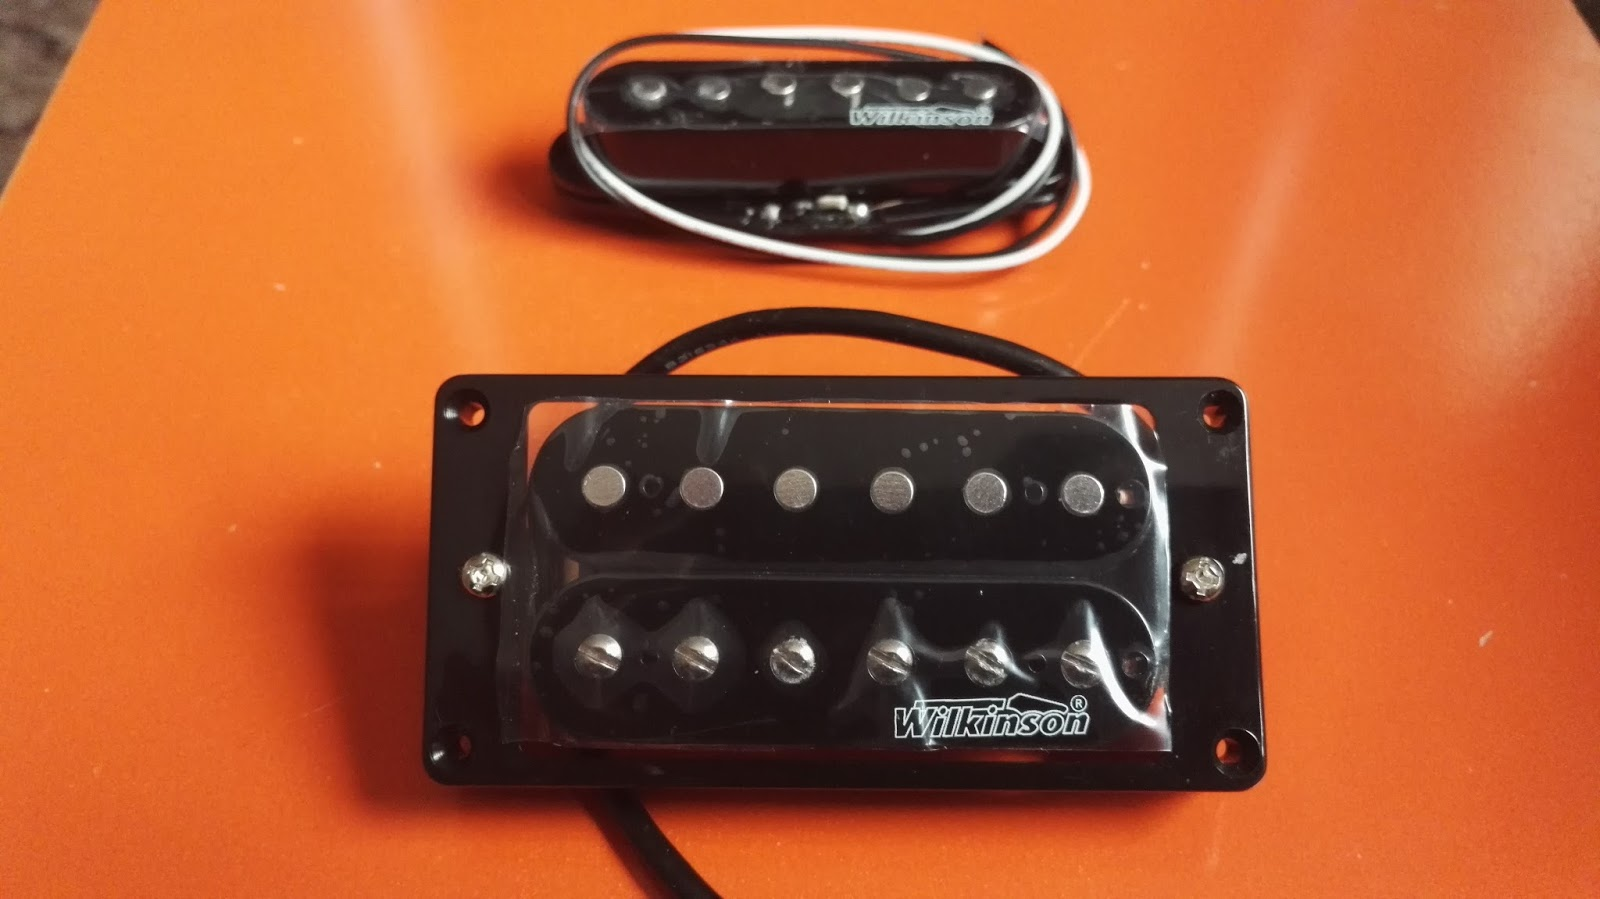 Wilkinson Guitar Pickup Wiring Diagram Trane Weathertron Baystat 239 Thermostat Vintage 60s Mwvs And Hot Humbucker Mwhb Review